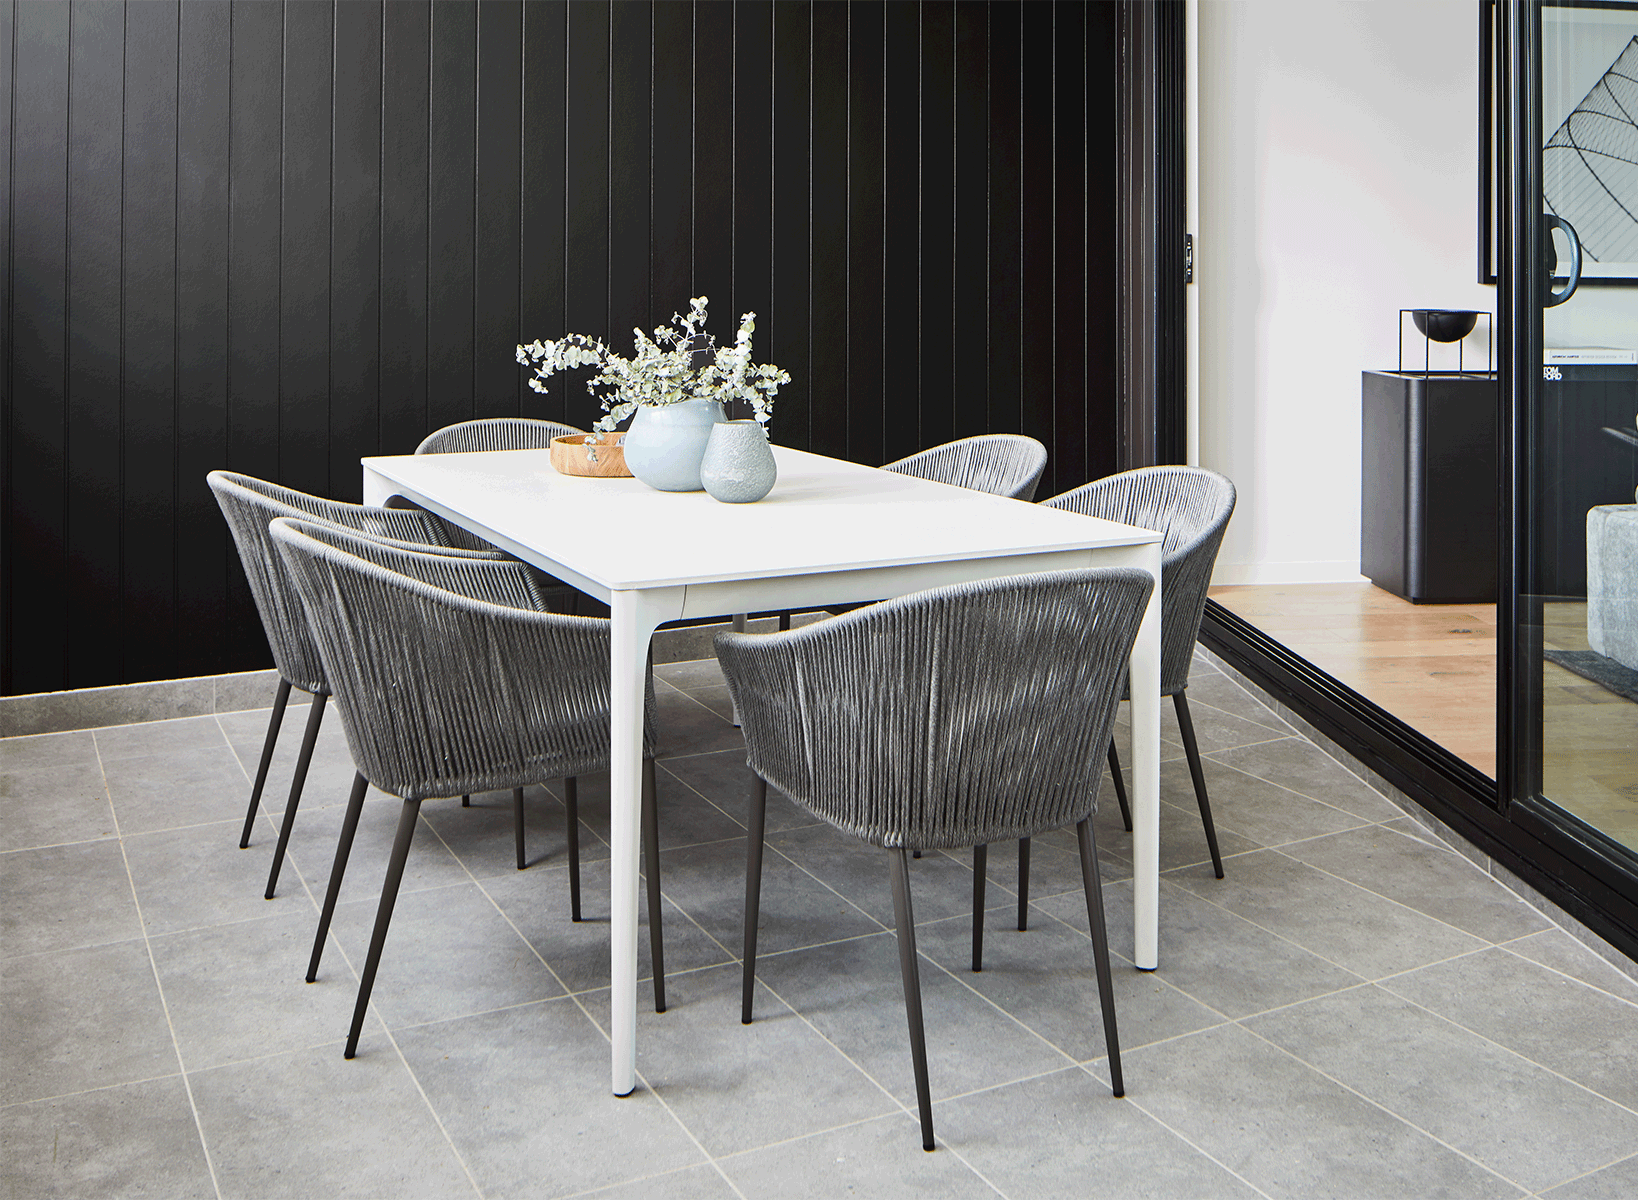 King Living - Quay Outdoor Dining Table